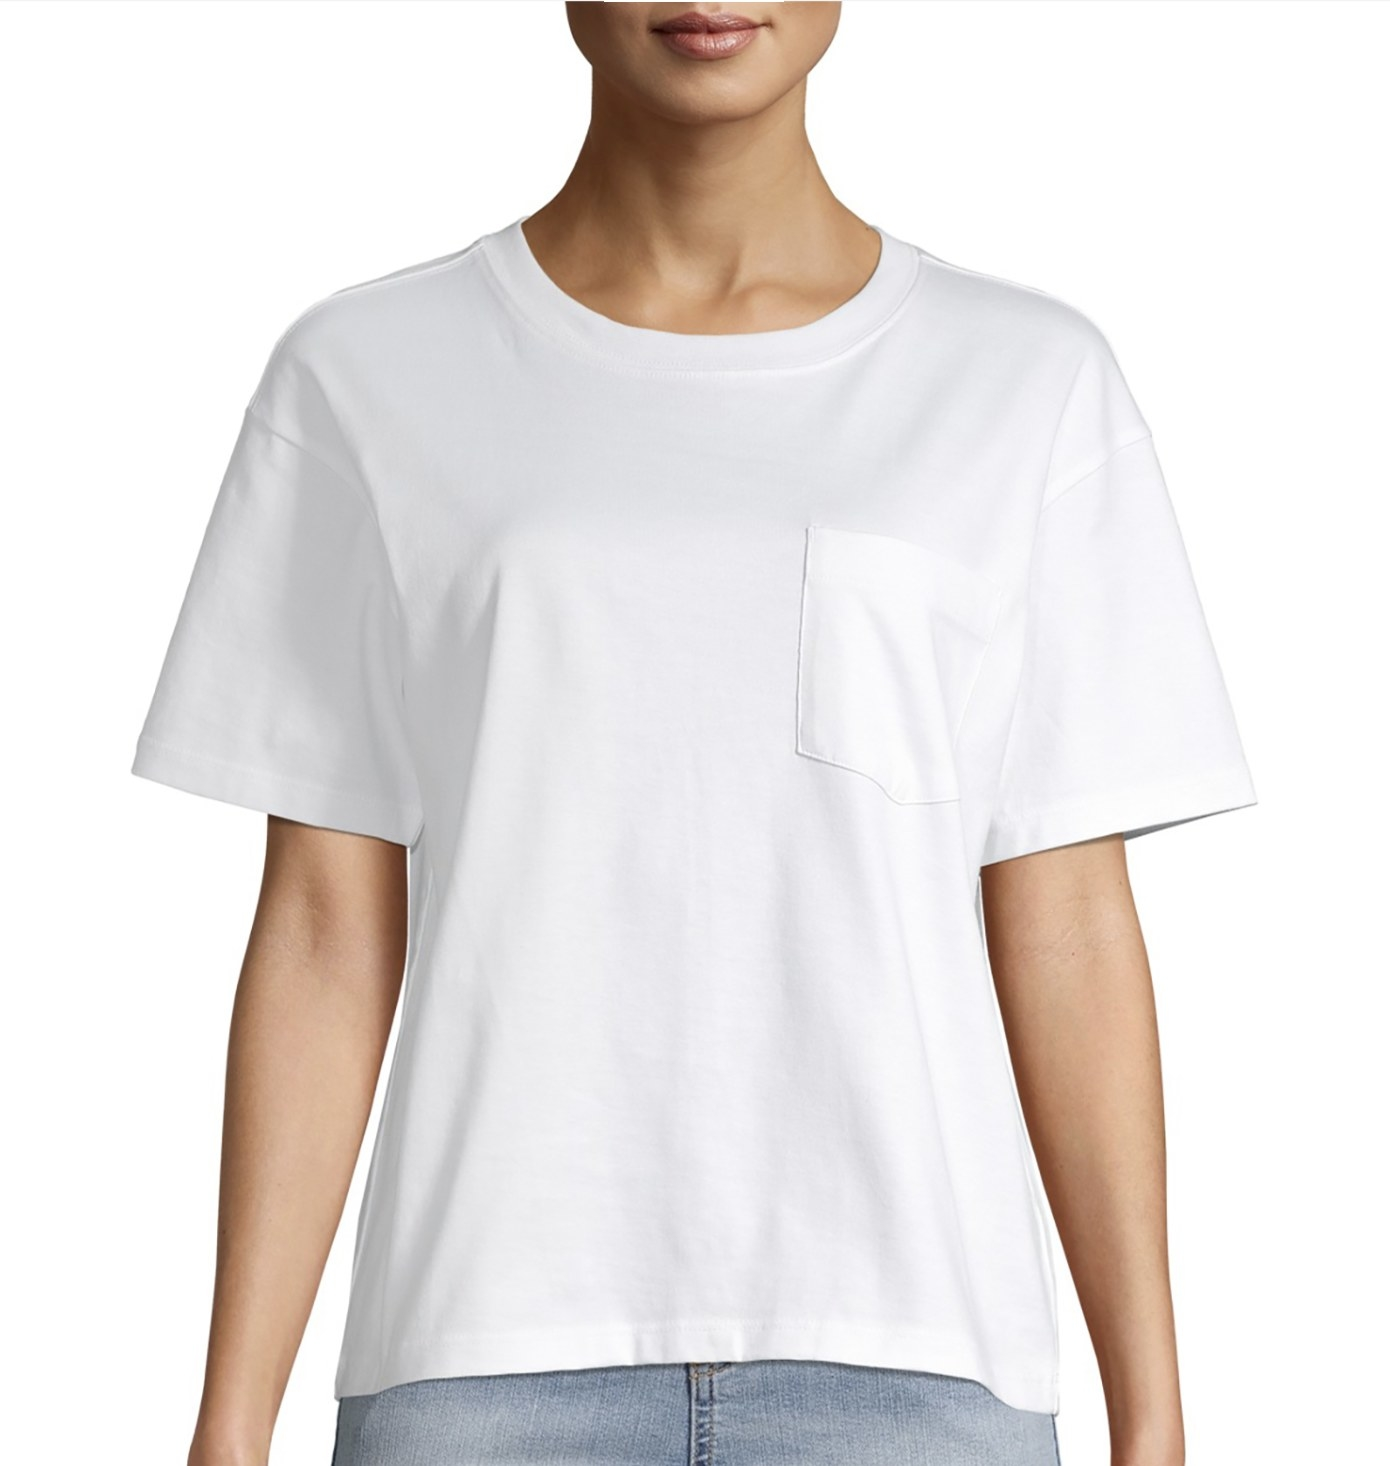 Model in the white T-shirt with chest pocket